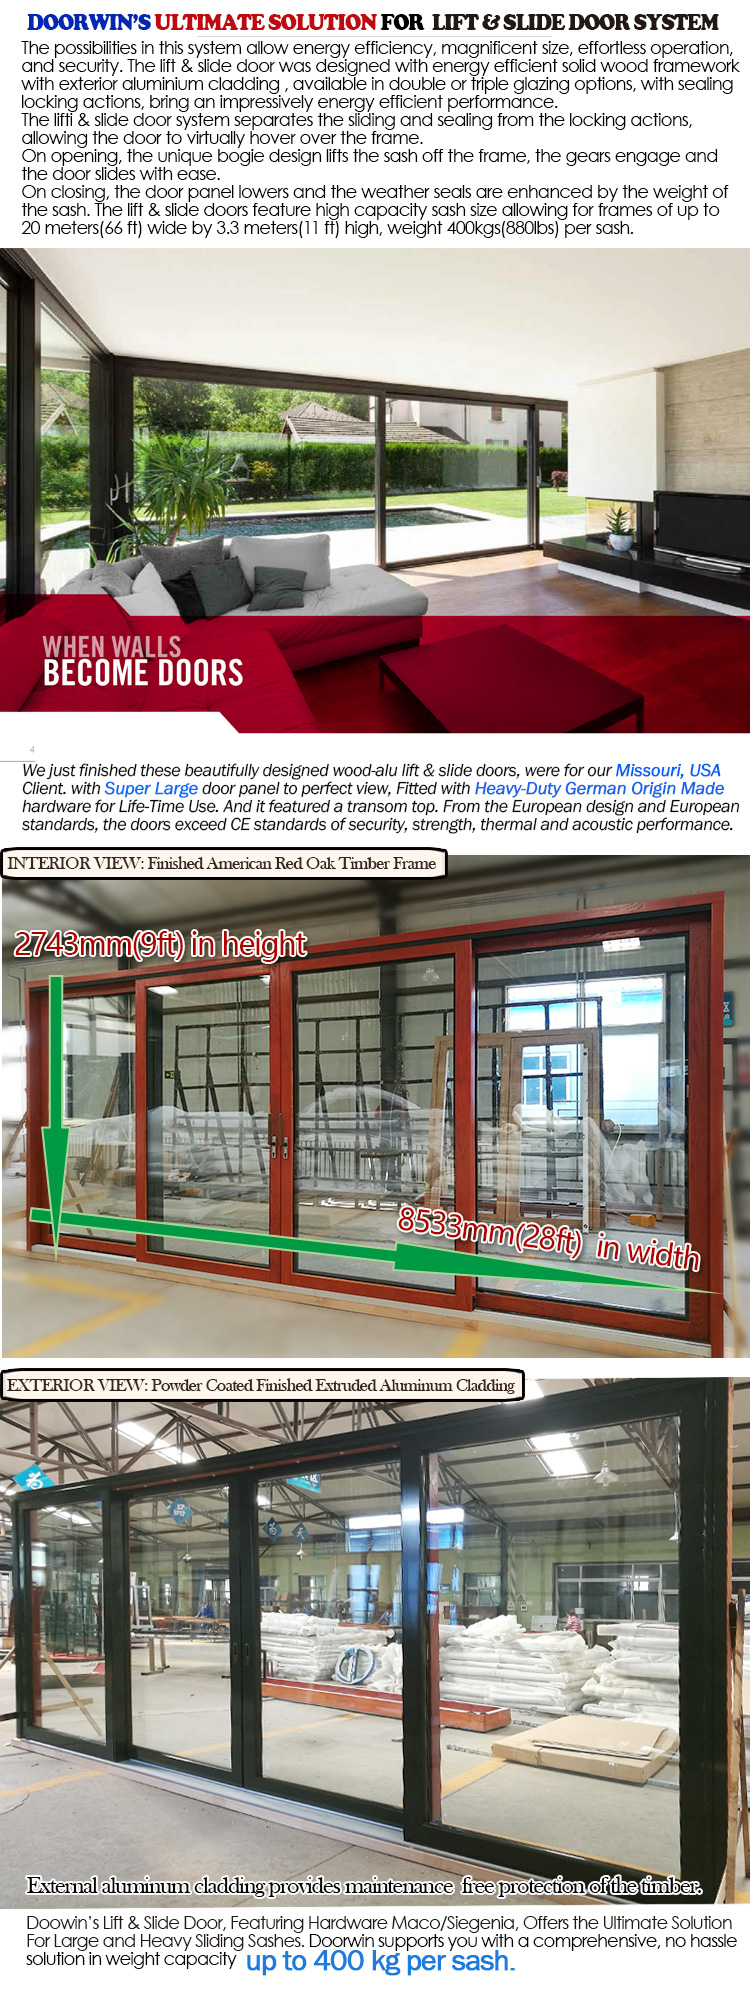 Purchasing Pocket glass sliding door with  plexiglass patio